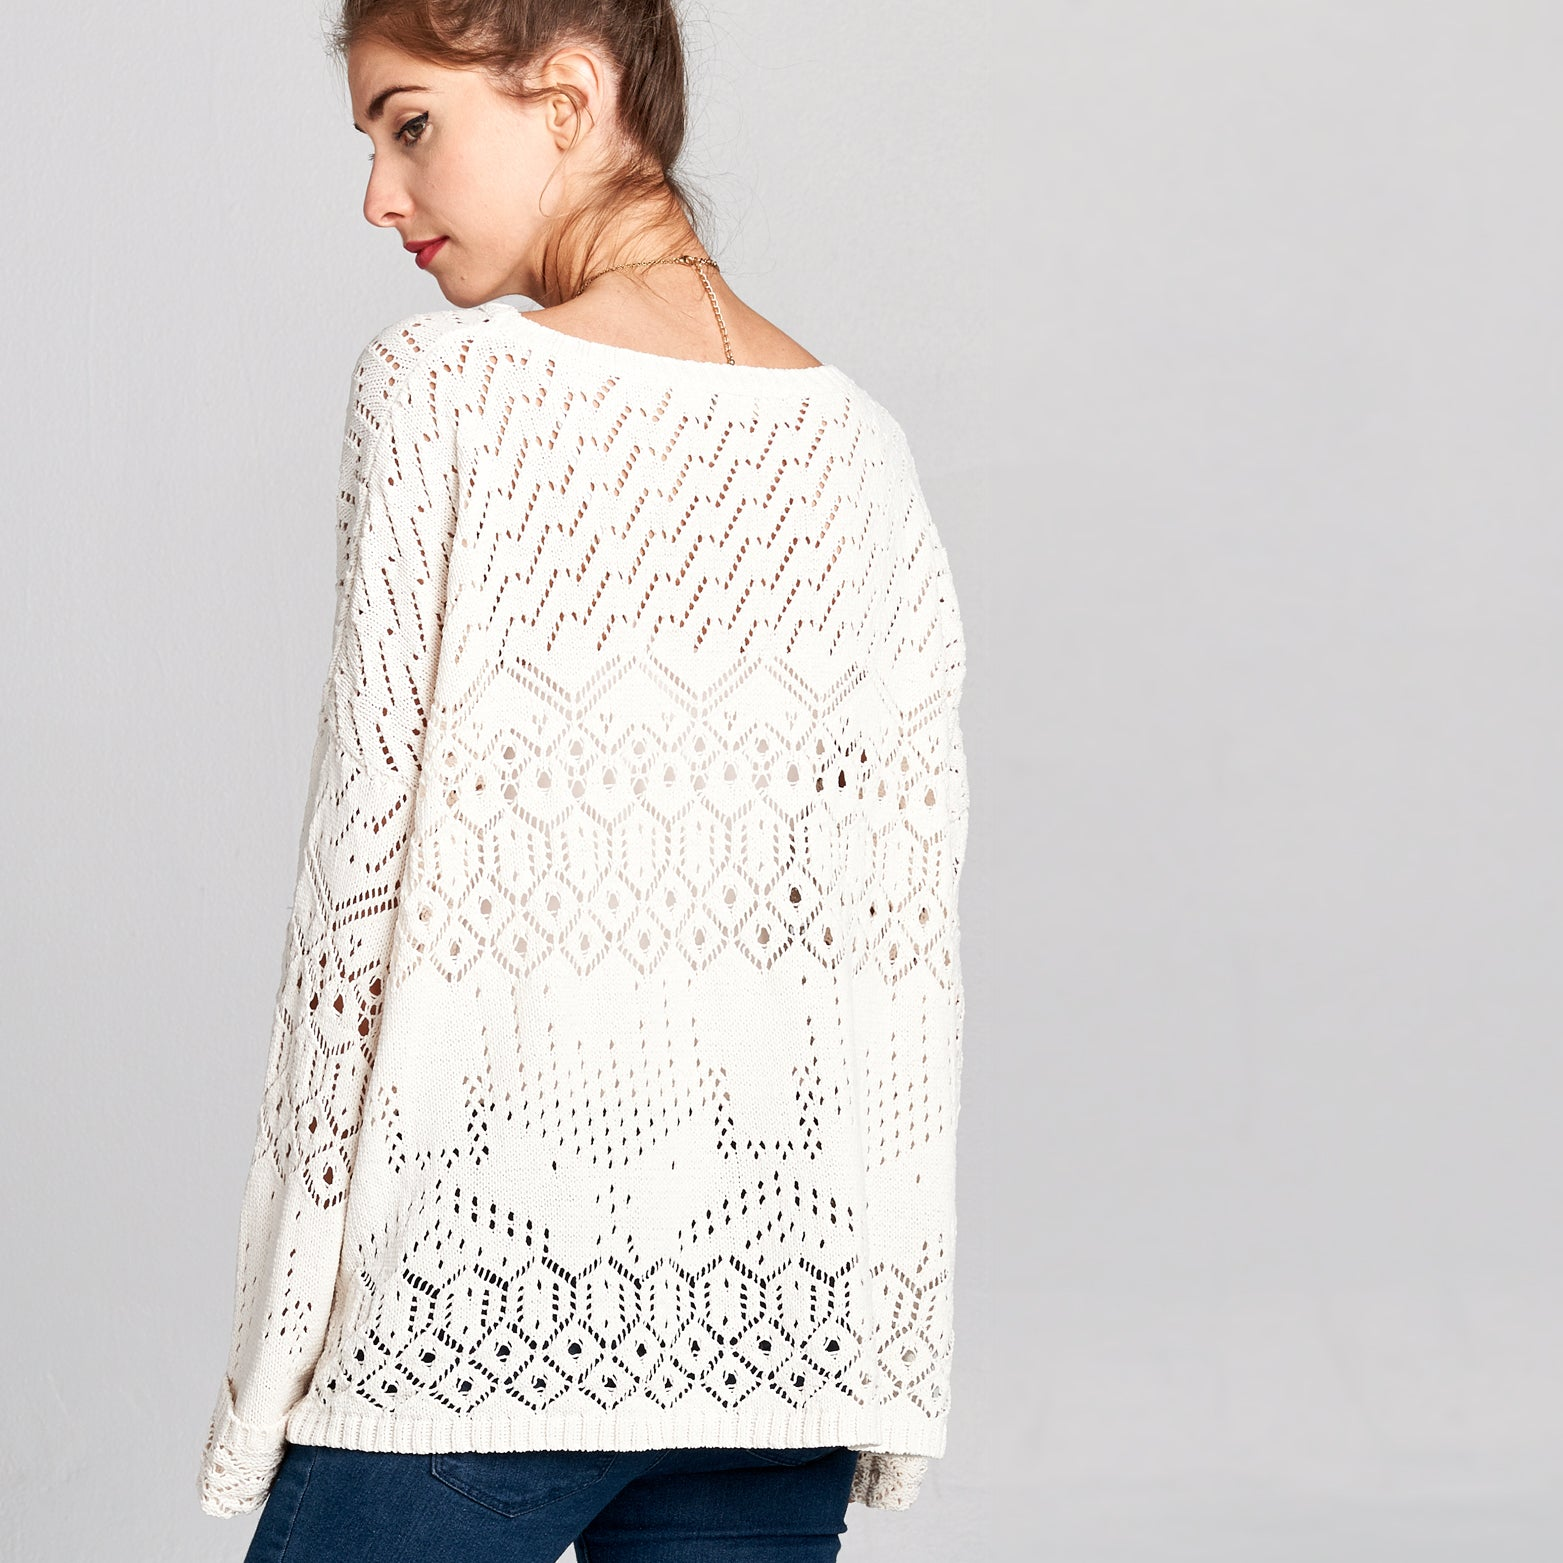 Crochet Knit Sweater - Love, Kuza